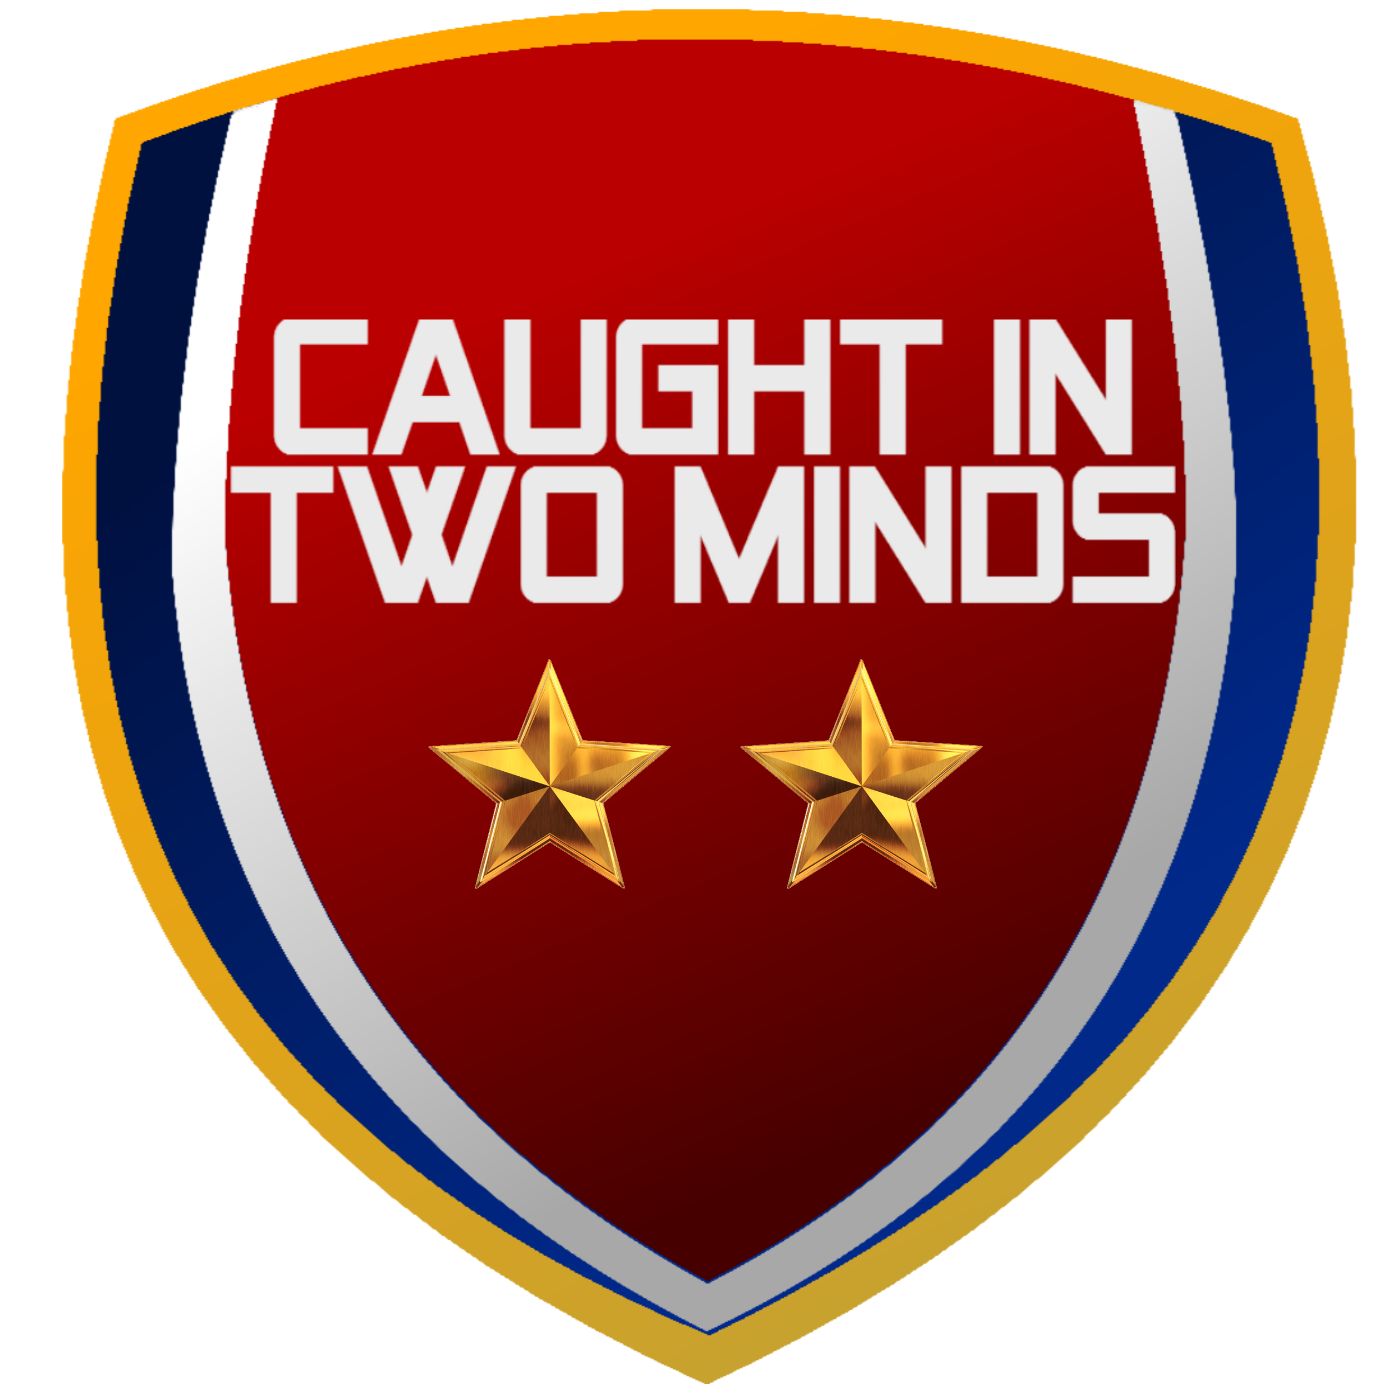 13 - Caught In Two Minds